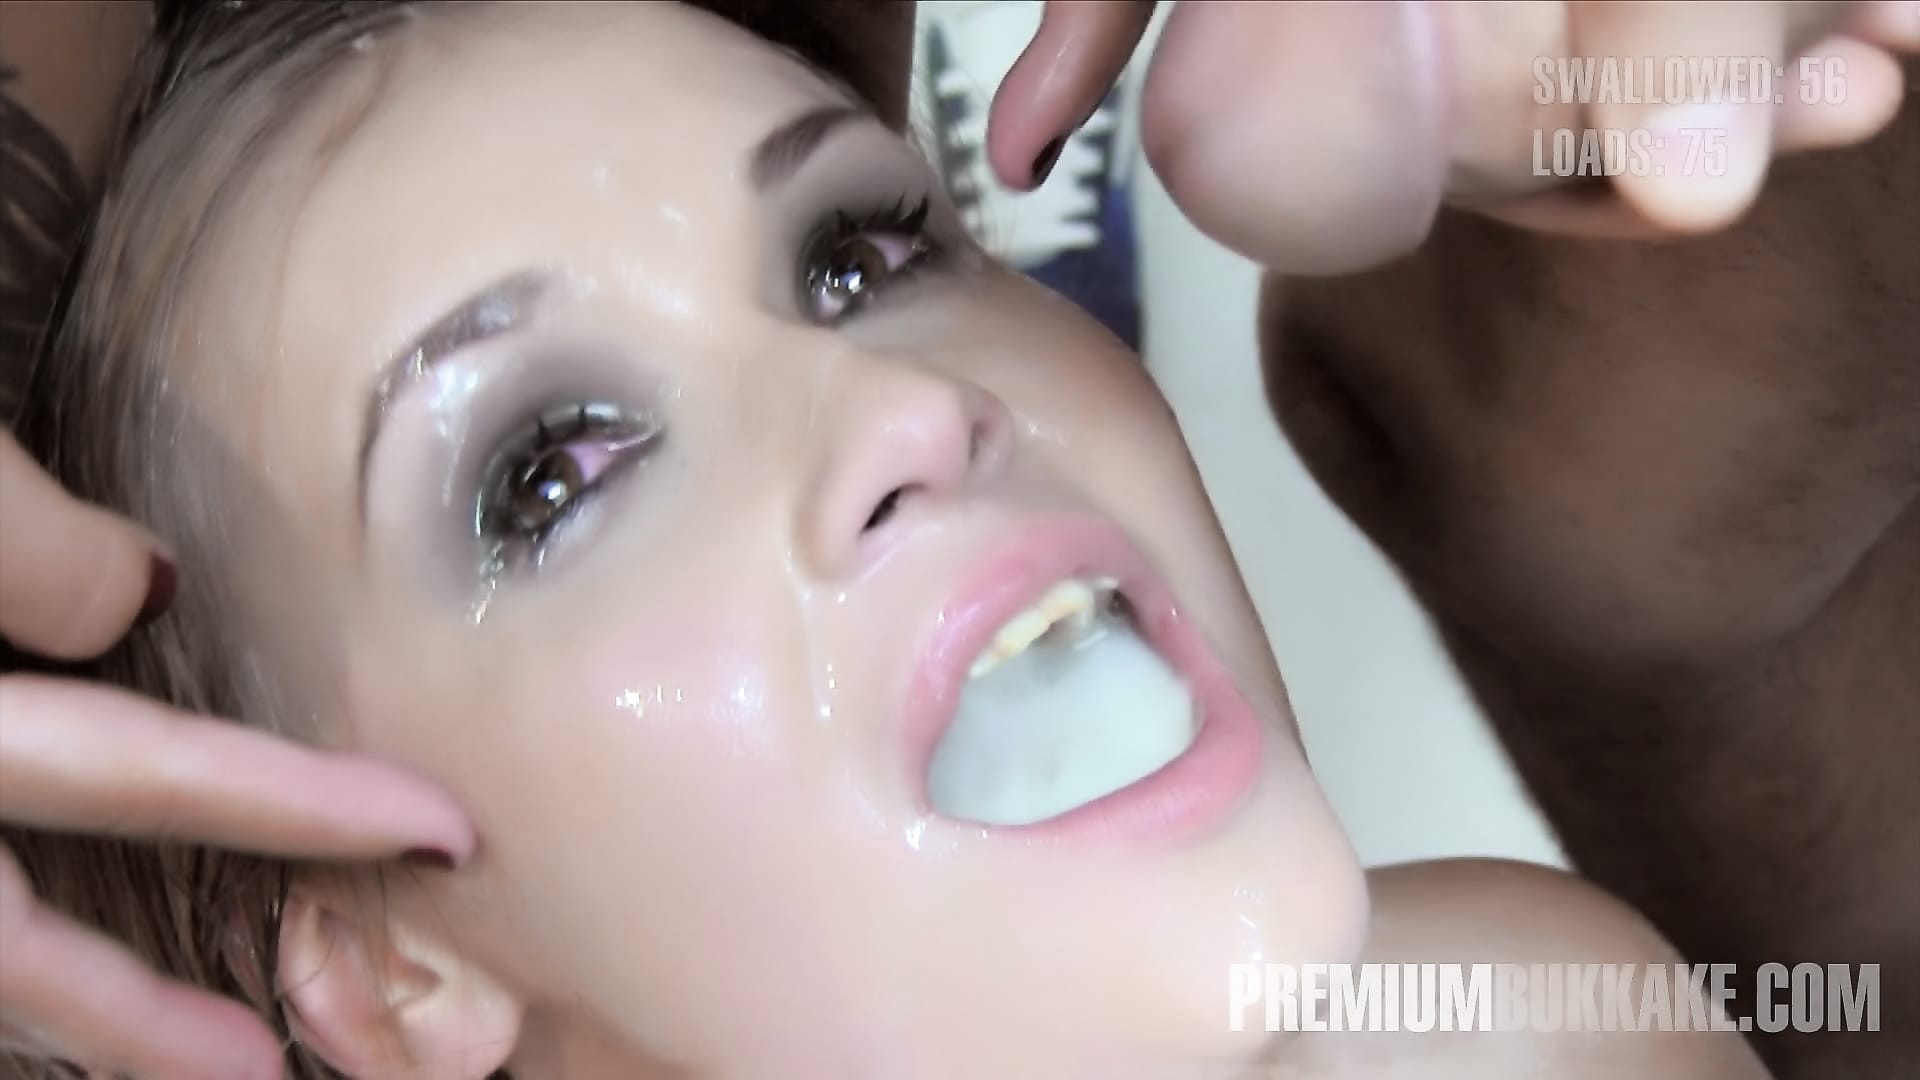 Premium bukkake veronica avluv swallows 61 huge mouthful c - 5 4